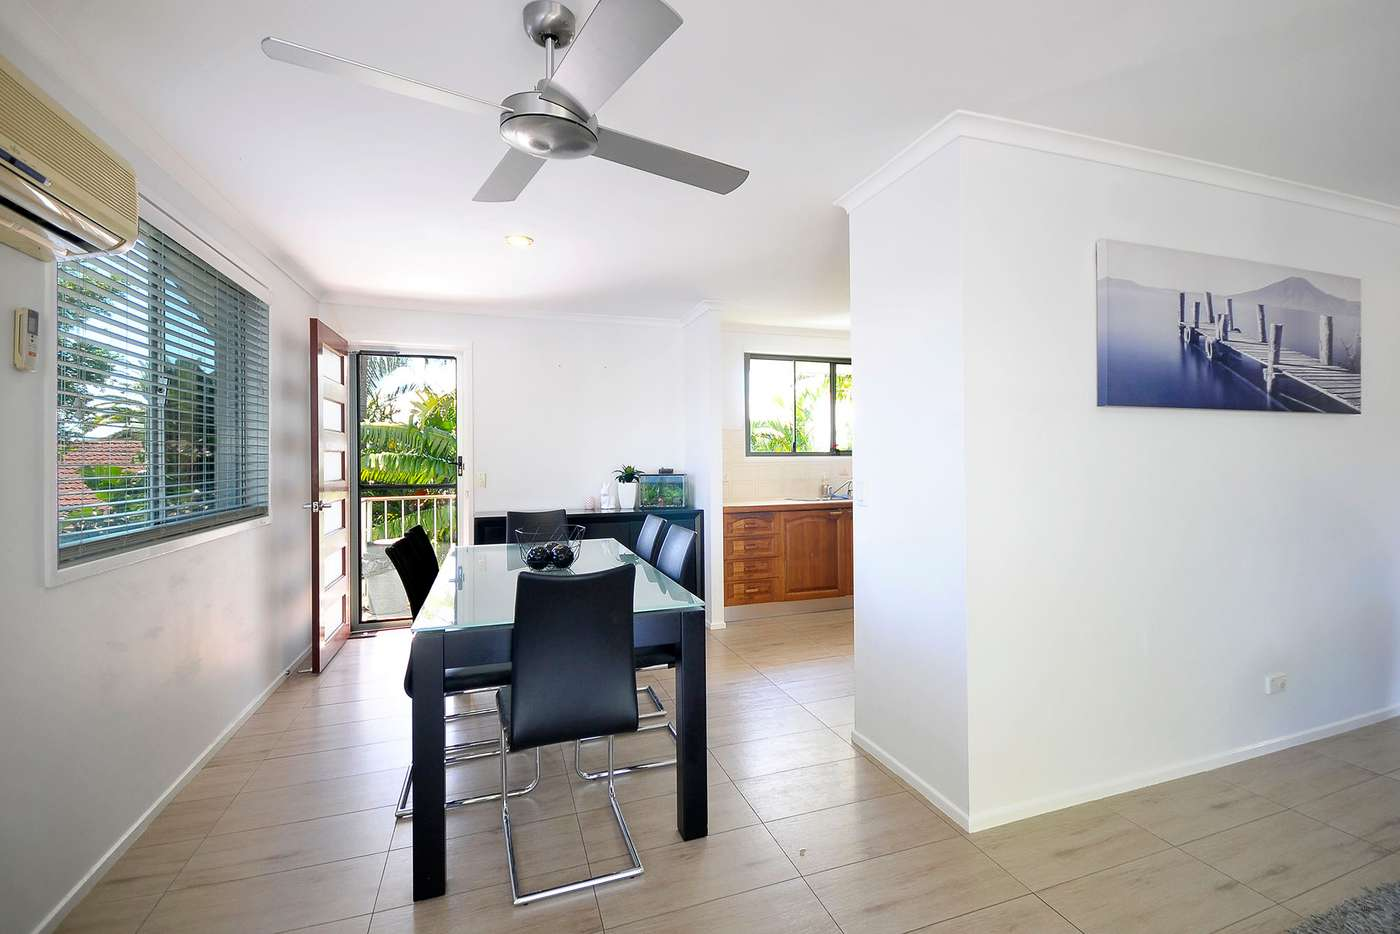 Sixth view of Homely house listing, 5 Spindle Street, Palm Beach QLD 4221